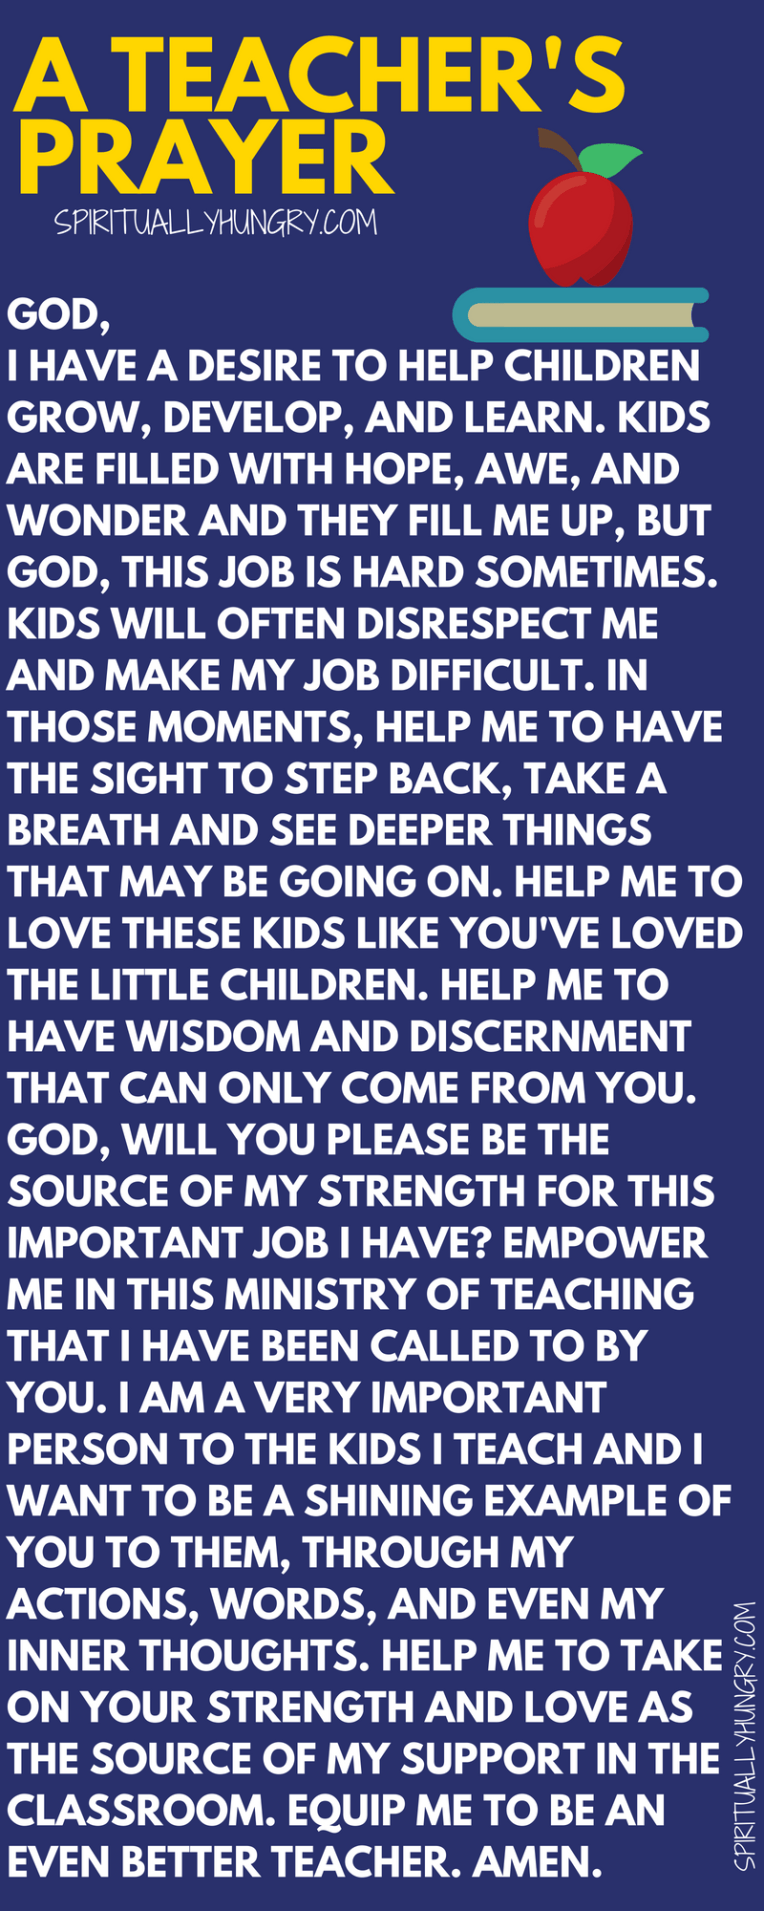 A Teacher's Prayer is part of Teacher encouragement, Teacher prayer, Teacher devotions, School prayer, Teacher motivation, Teacher quotes - You have a lot of responsibility and that's why we created this teacher's prayer for you  Prayer for a teacher is essential as it helps equip you to stand strong in the Lord